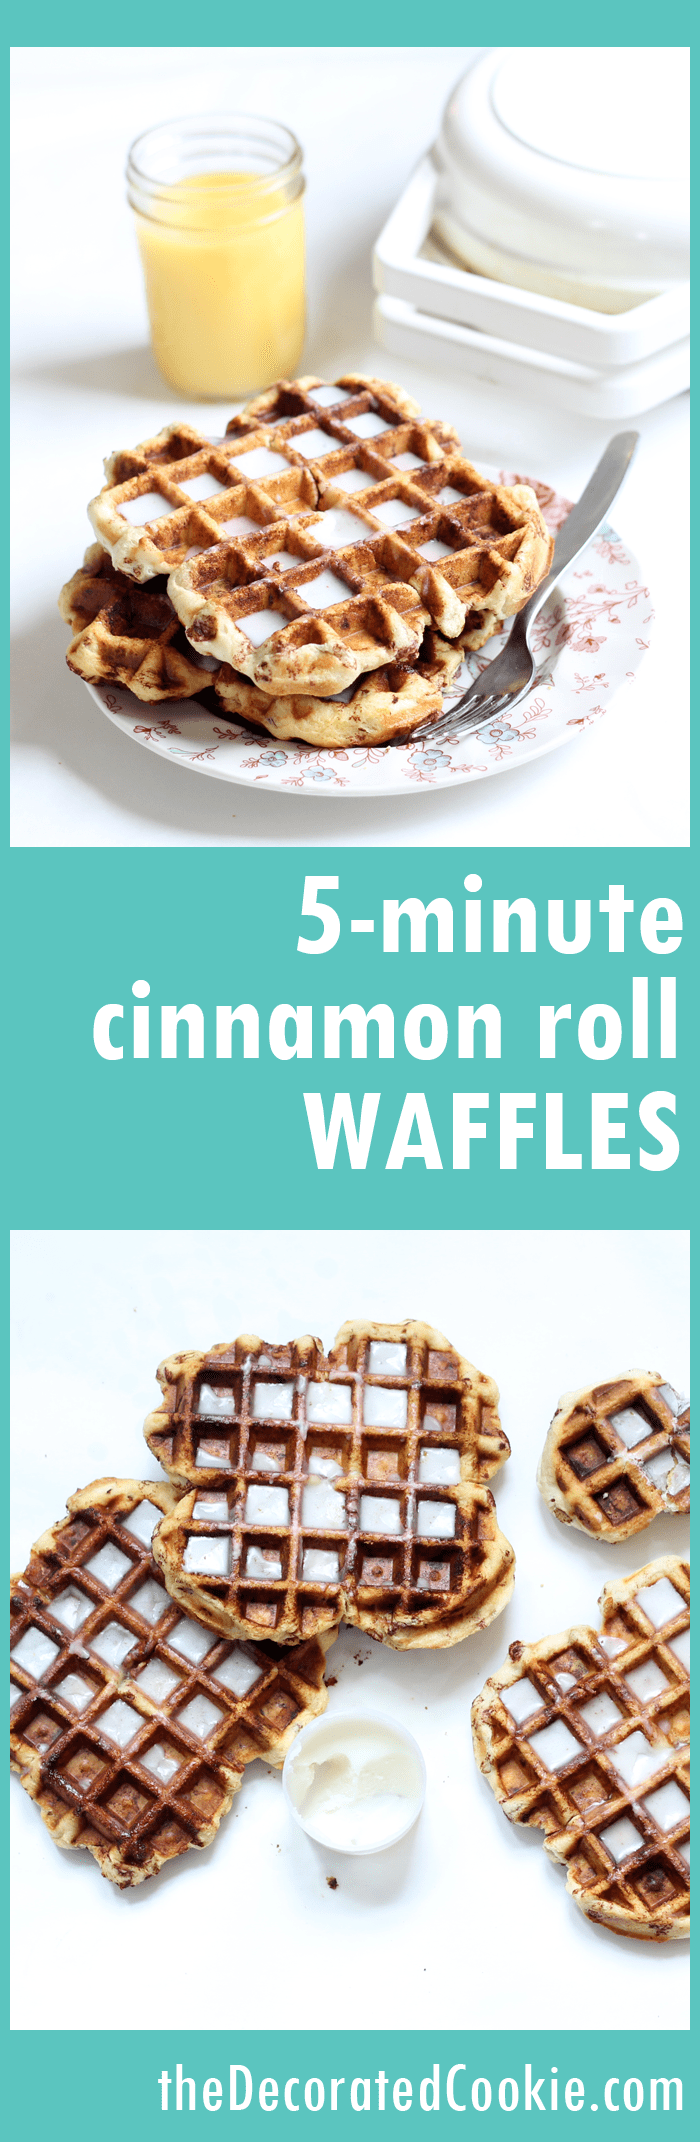 cinnamon roll waffles -- 5-minute cinnamon rolls in your waffle iron